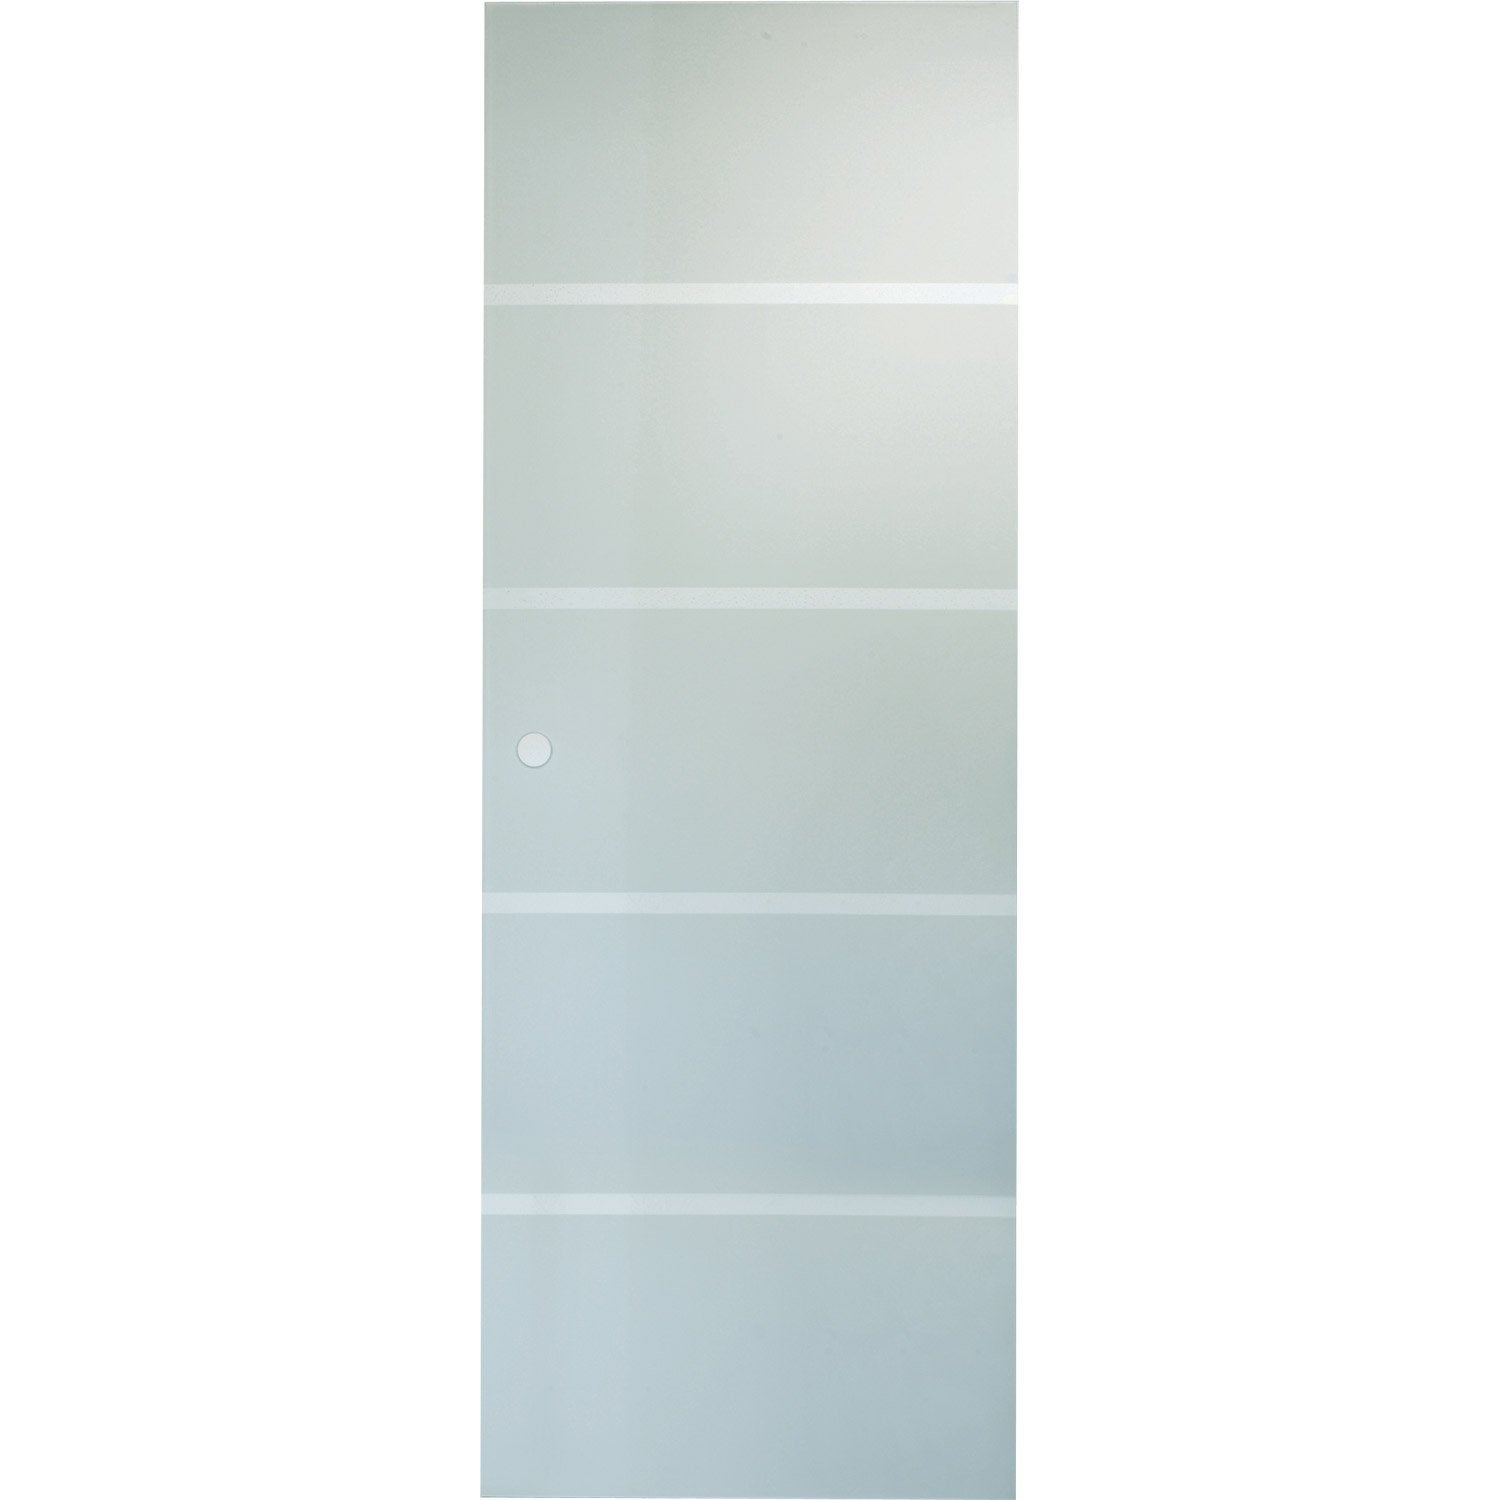 Porte coulissante verre tremp miami artens 204 x 83 cm for Porte interieur 63 cm